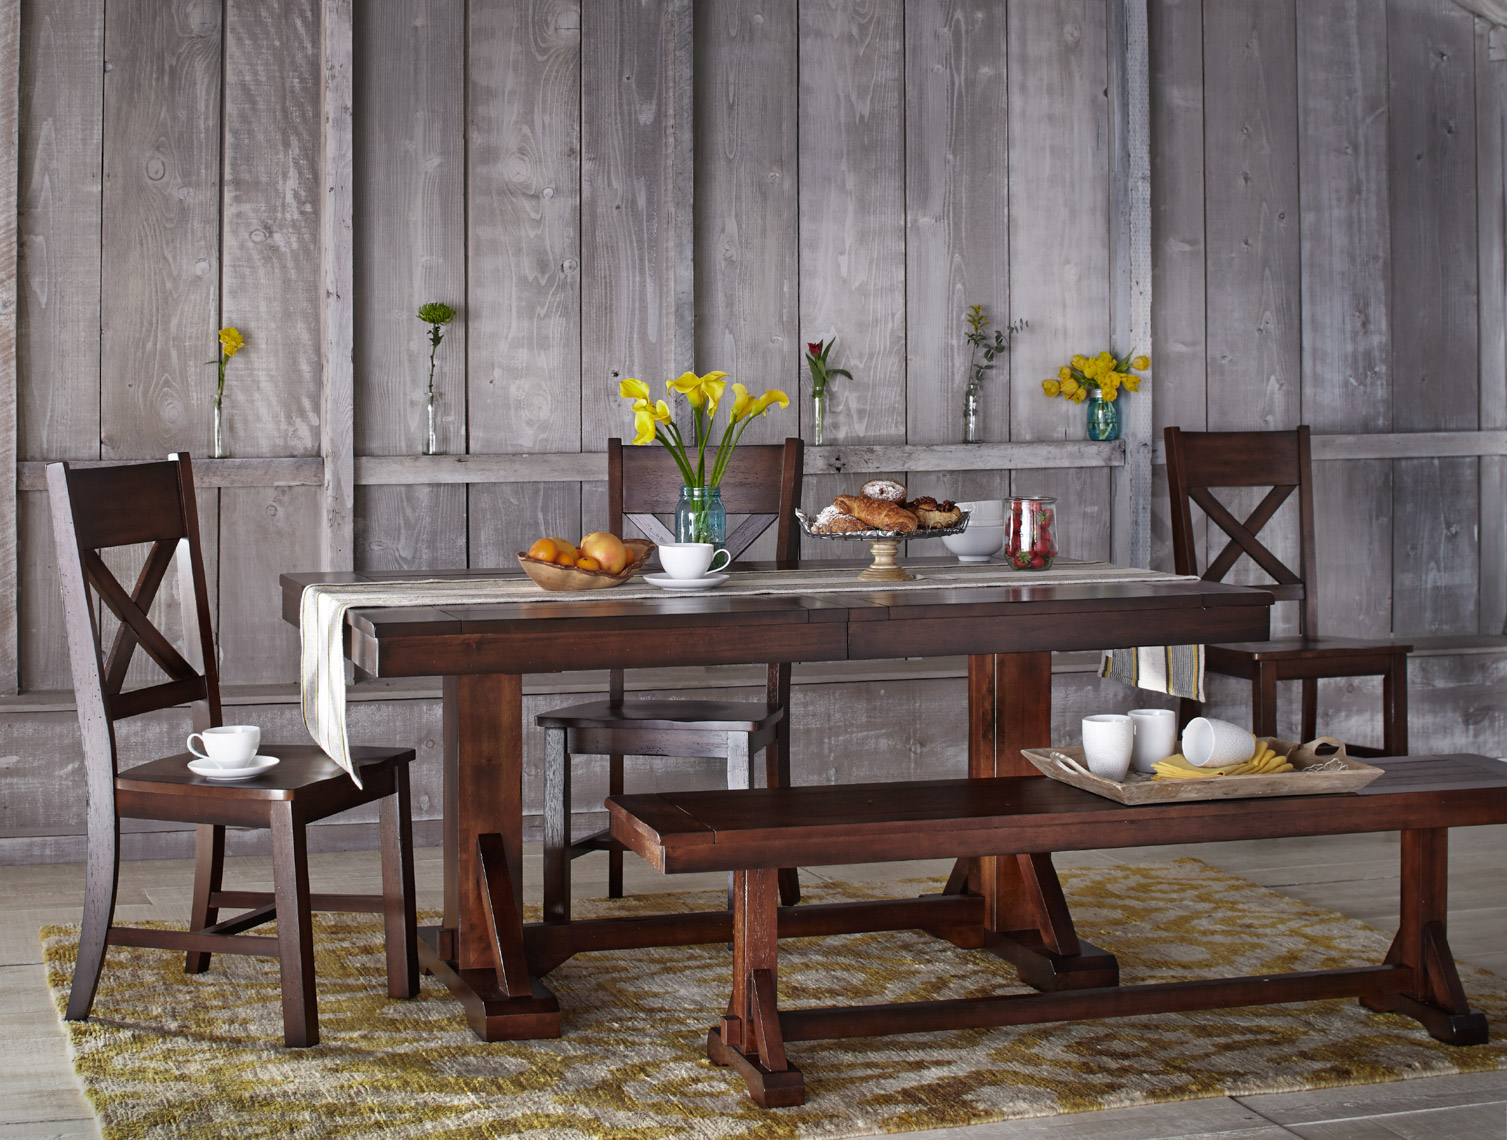 wooden dining table setup and flower decorations on barn door